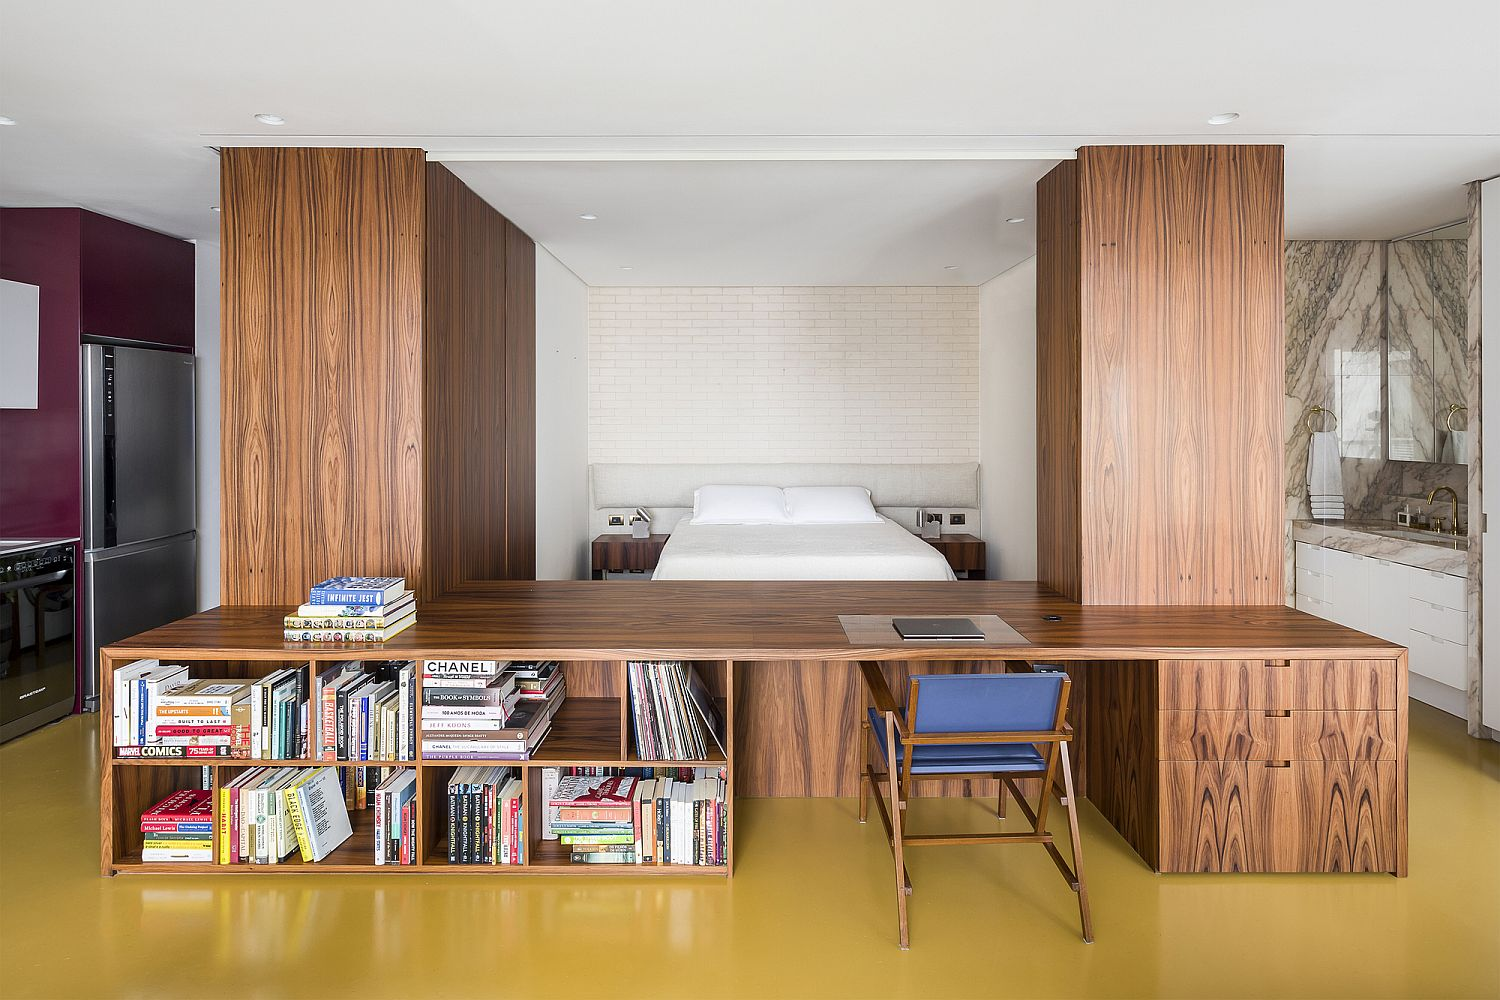 Innovative wooden box shapes the living room of the RA Apartment